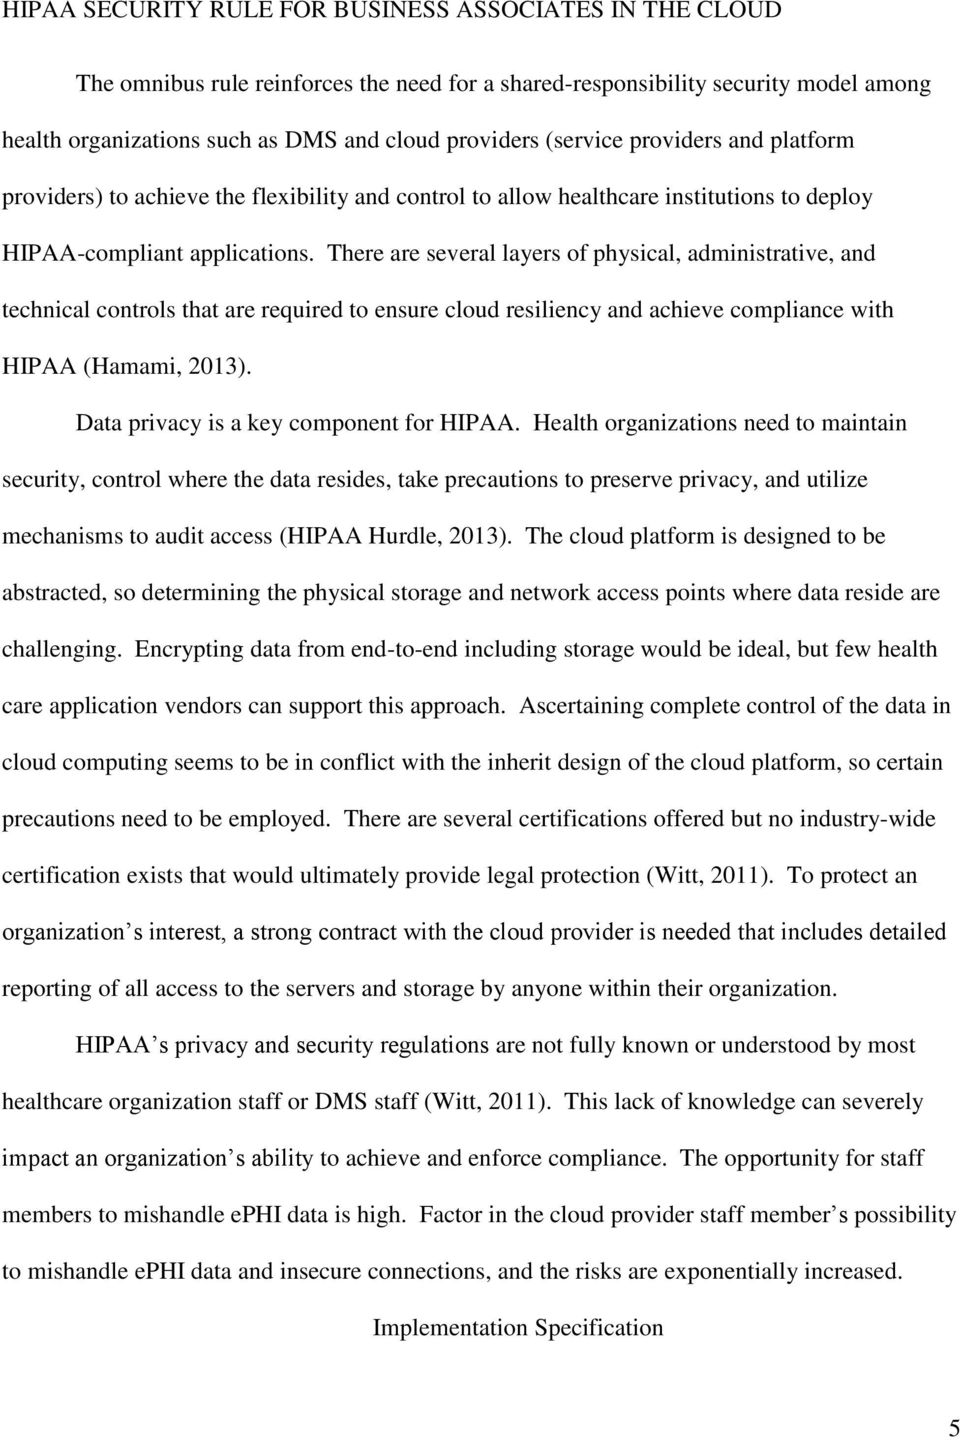 There are several layers of physical, administrative, and technical controls that are required to ensure cloud resiliency and achieve compliance with HIPAA (Hamami, 2013).